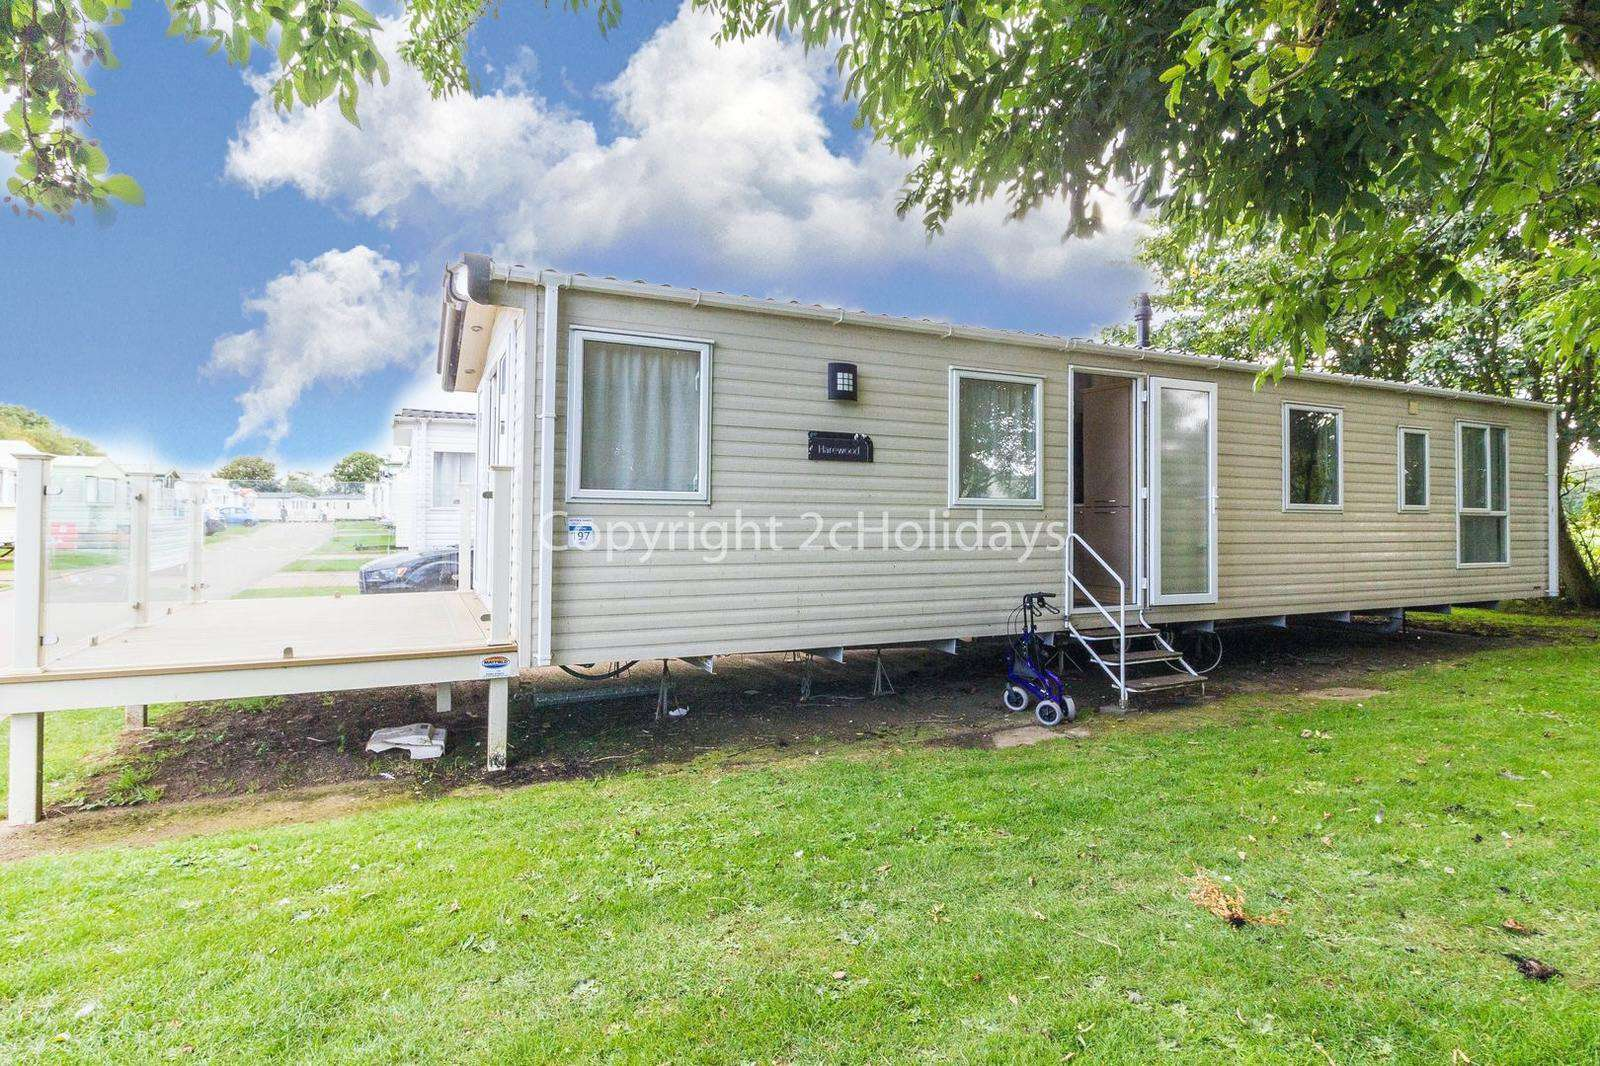 Superb 8 berth caravan on a fantastic family friendly holiday park!